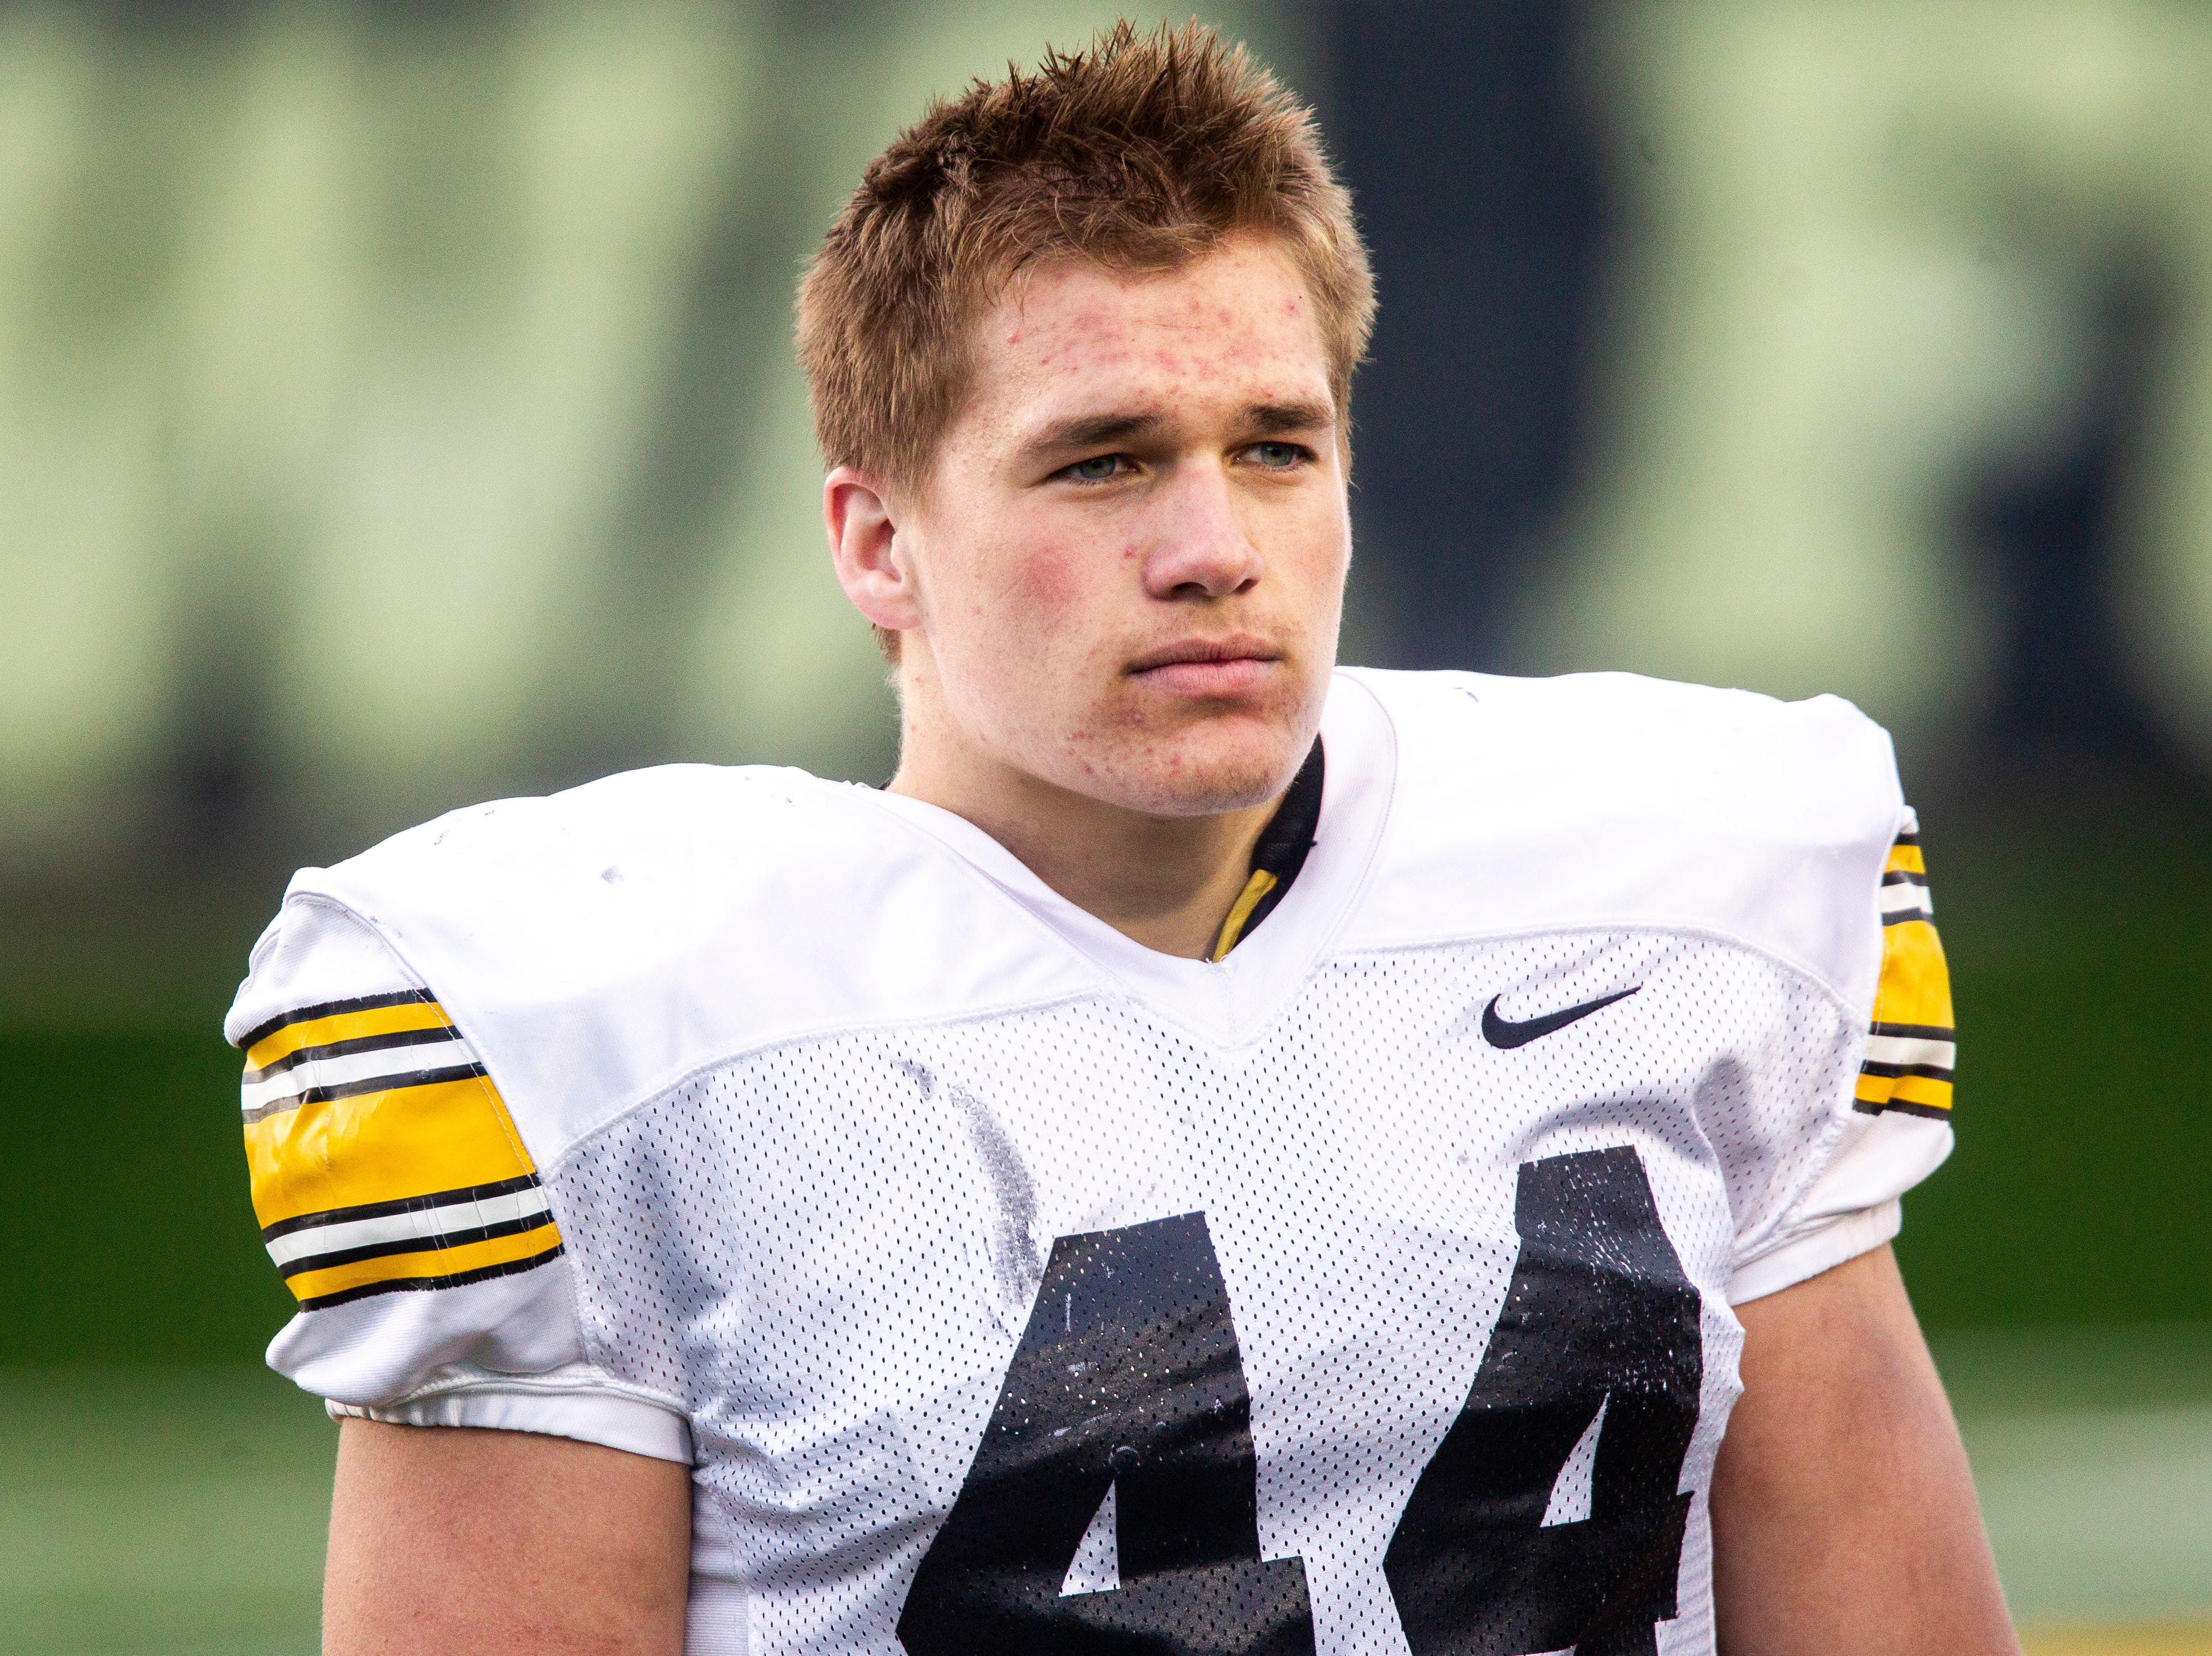 Iowa linebacker Seth Benson (44) is pictured during the final spring football practice, Friday, April 26, 2019, at the University of Iowa outdoor practice facility in Iowa City, Iowa.